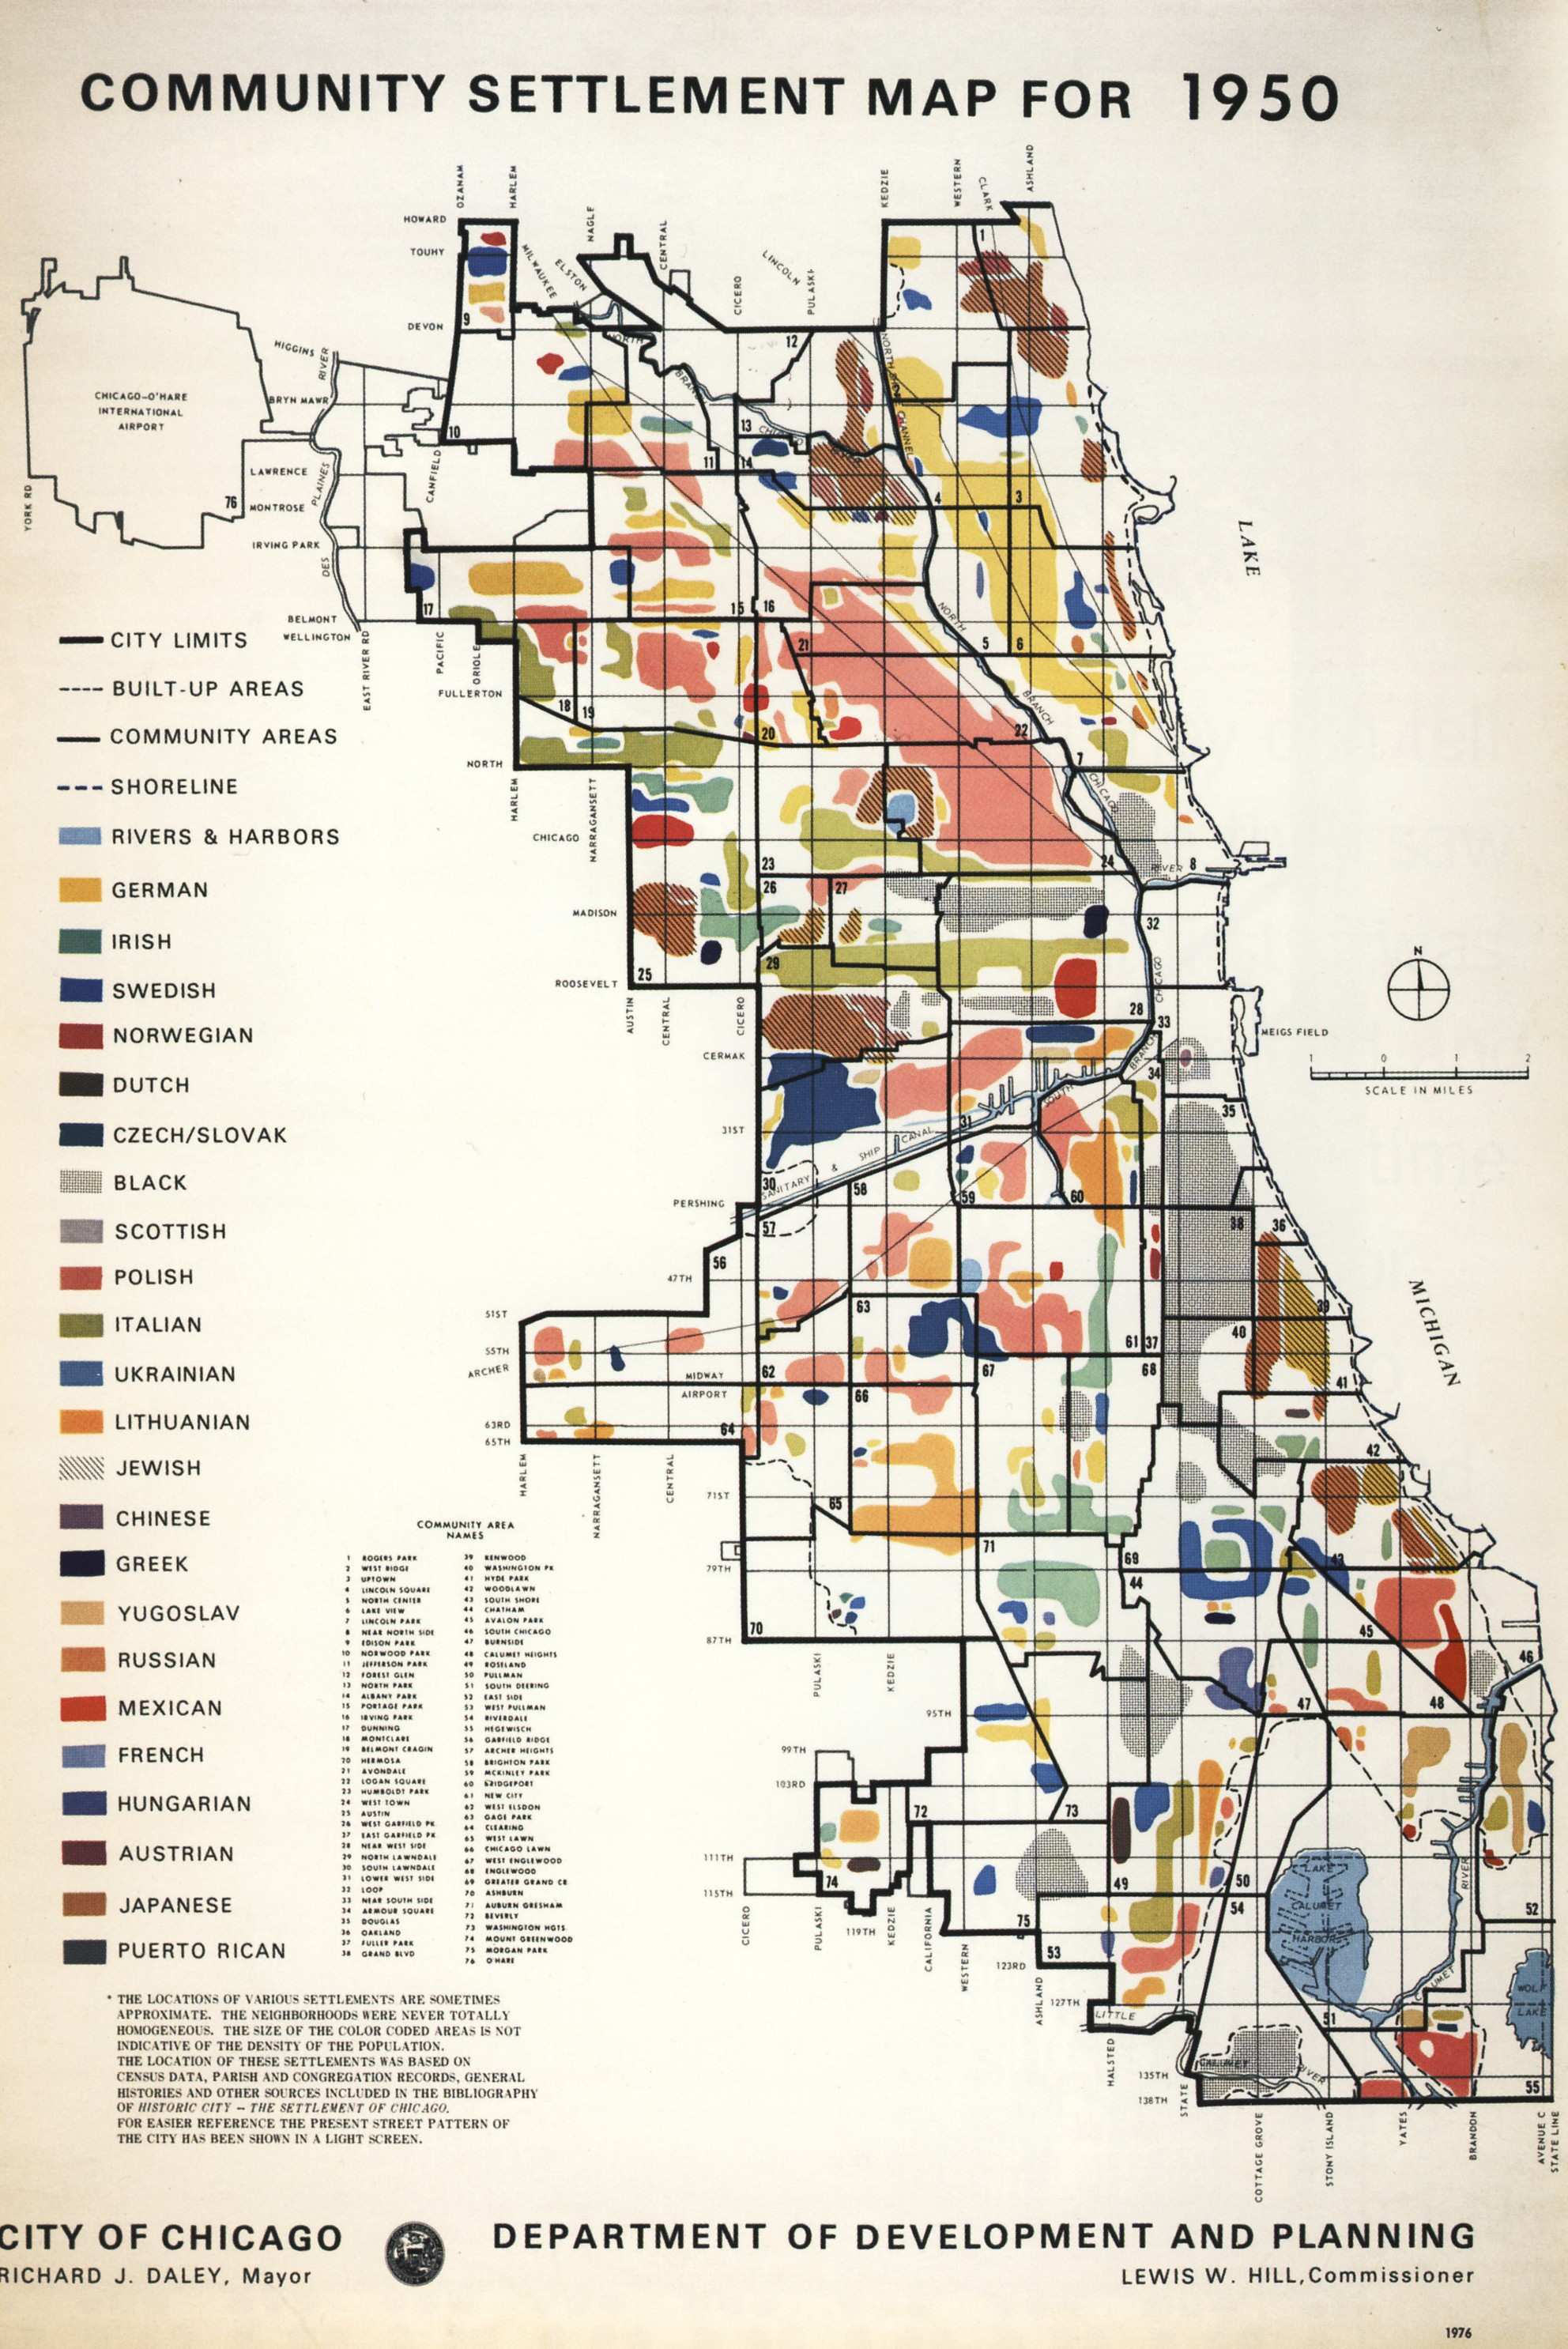 American Ethnicity Map 1950 Ethnic Map of Chicago